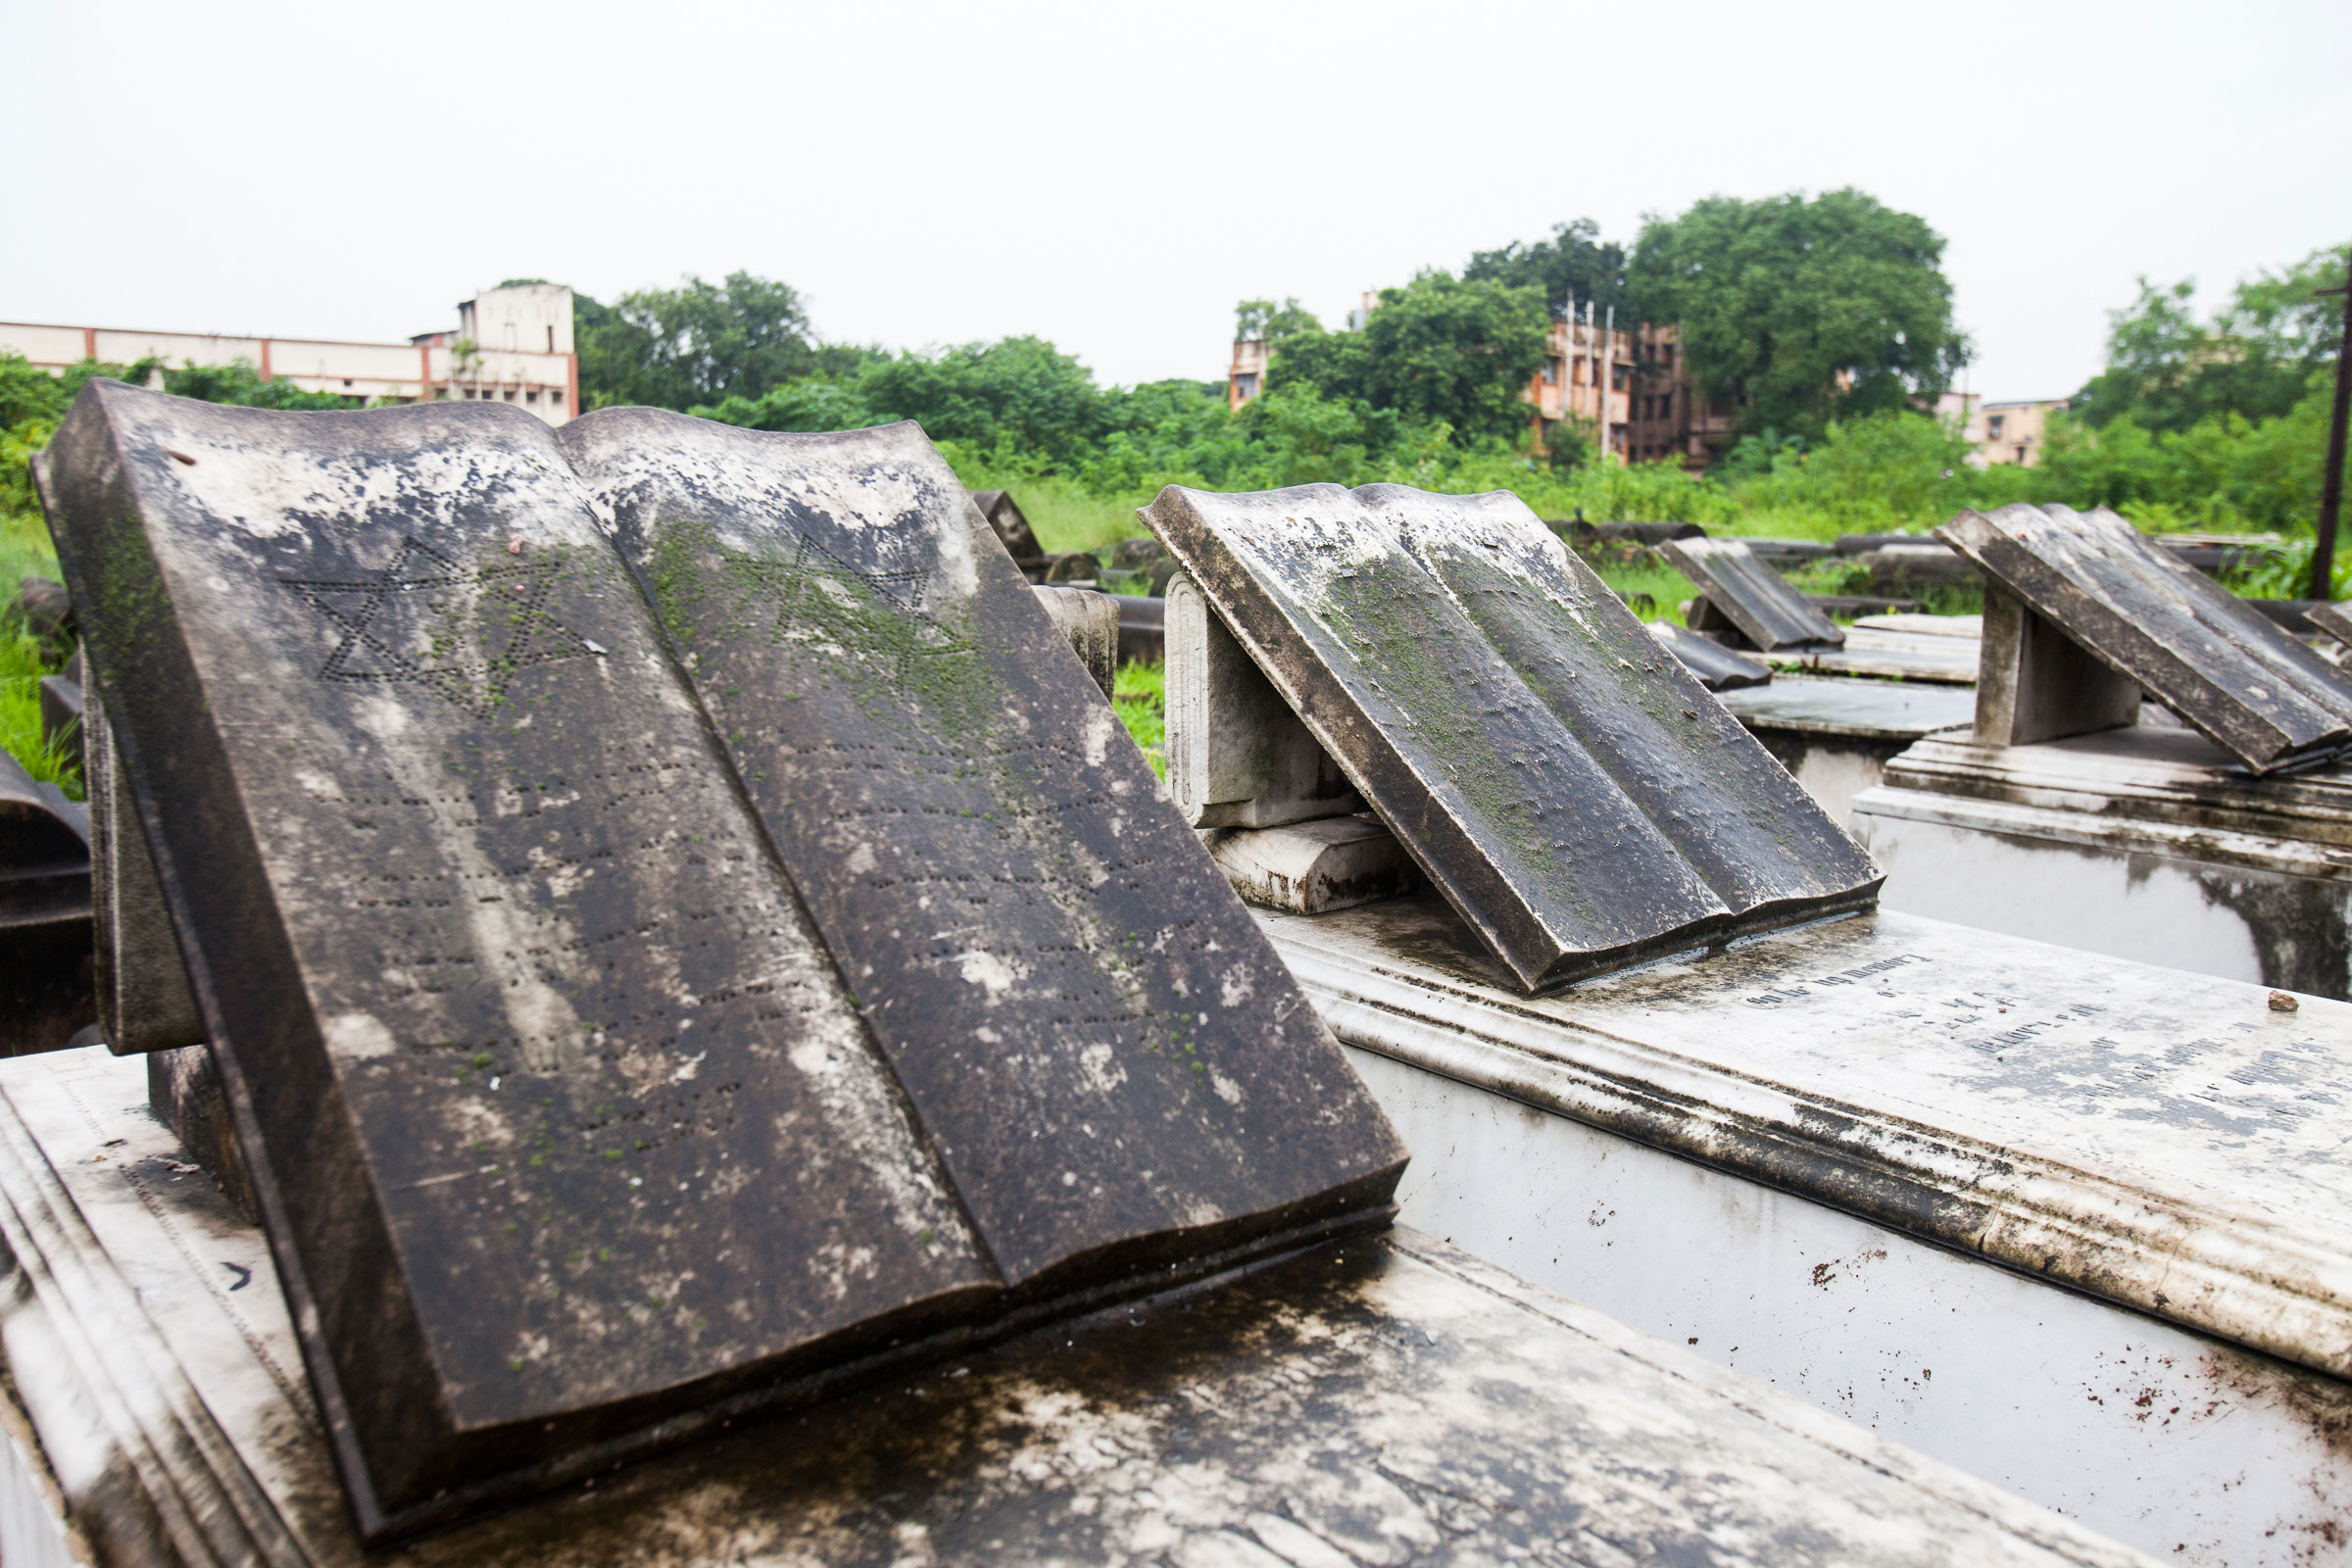 The Jewish cemetery in Calcutta in August 2014. The cemetery is over 150 years old and consists of about 2,000 Jewish tombs along with those of Russians and Polish Jews.  Usually the more elaborate and rectangular graves are those of Ashkenazy Jews. Bagdadi graves are rounded and have no decorative features.